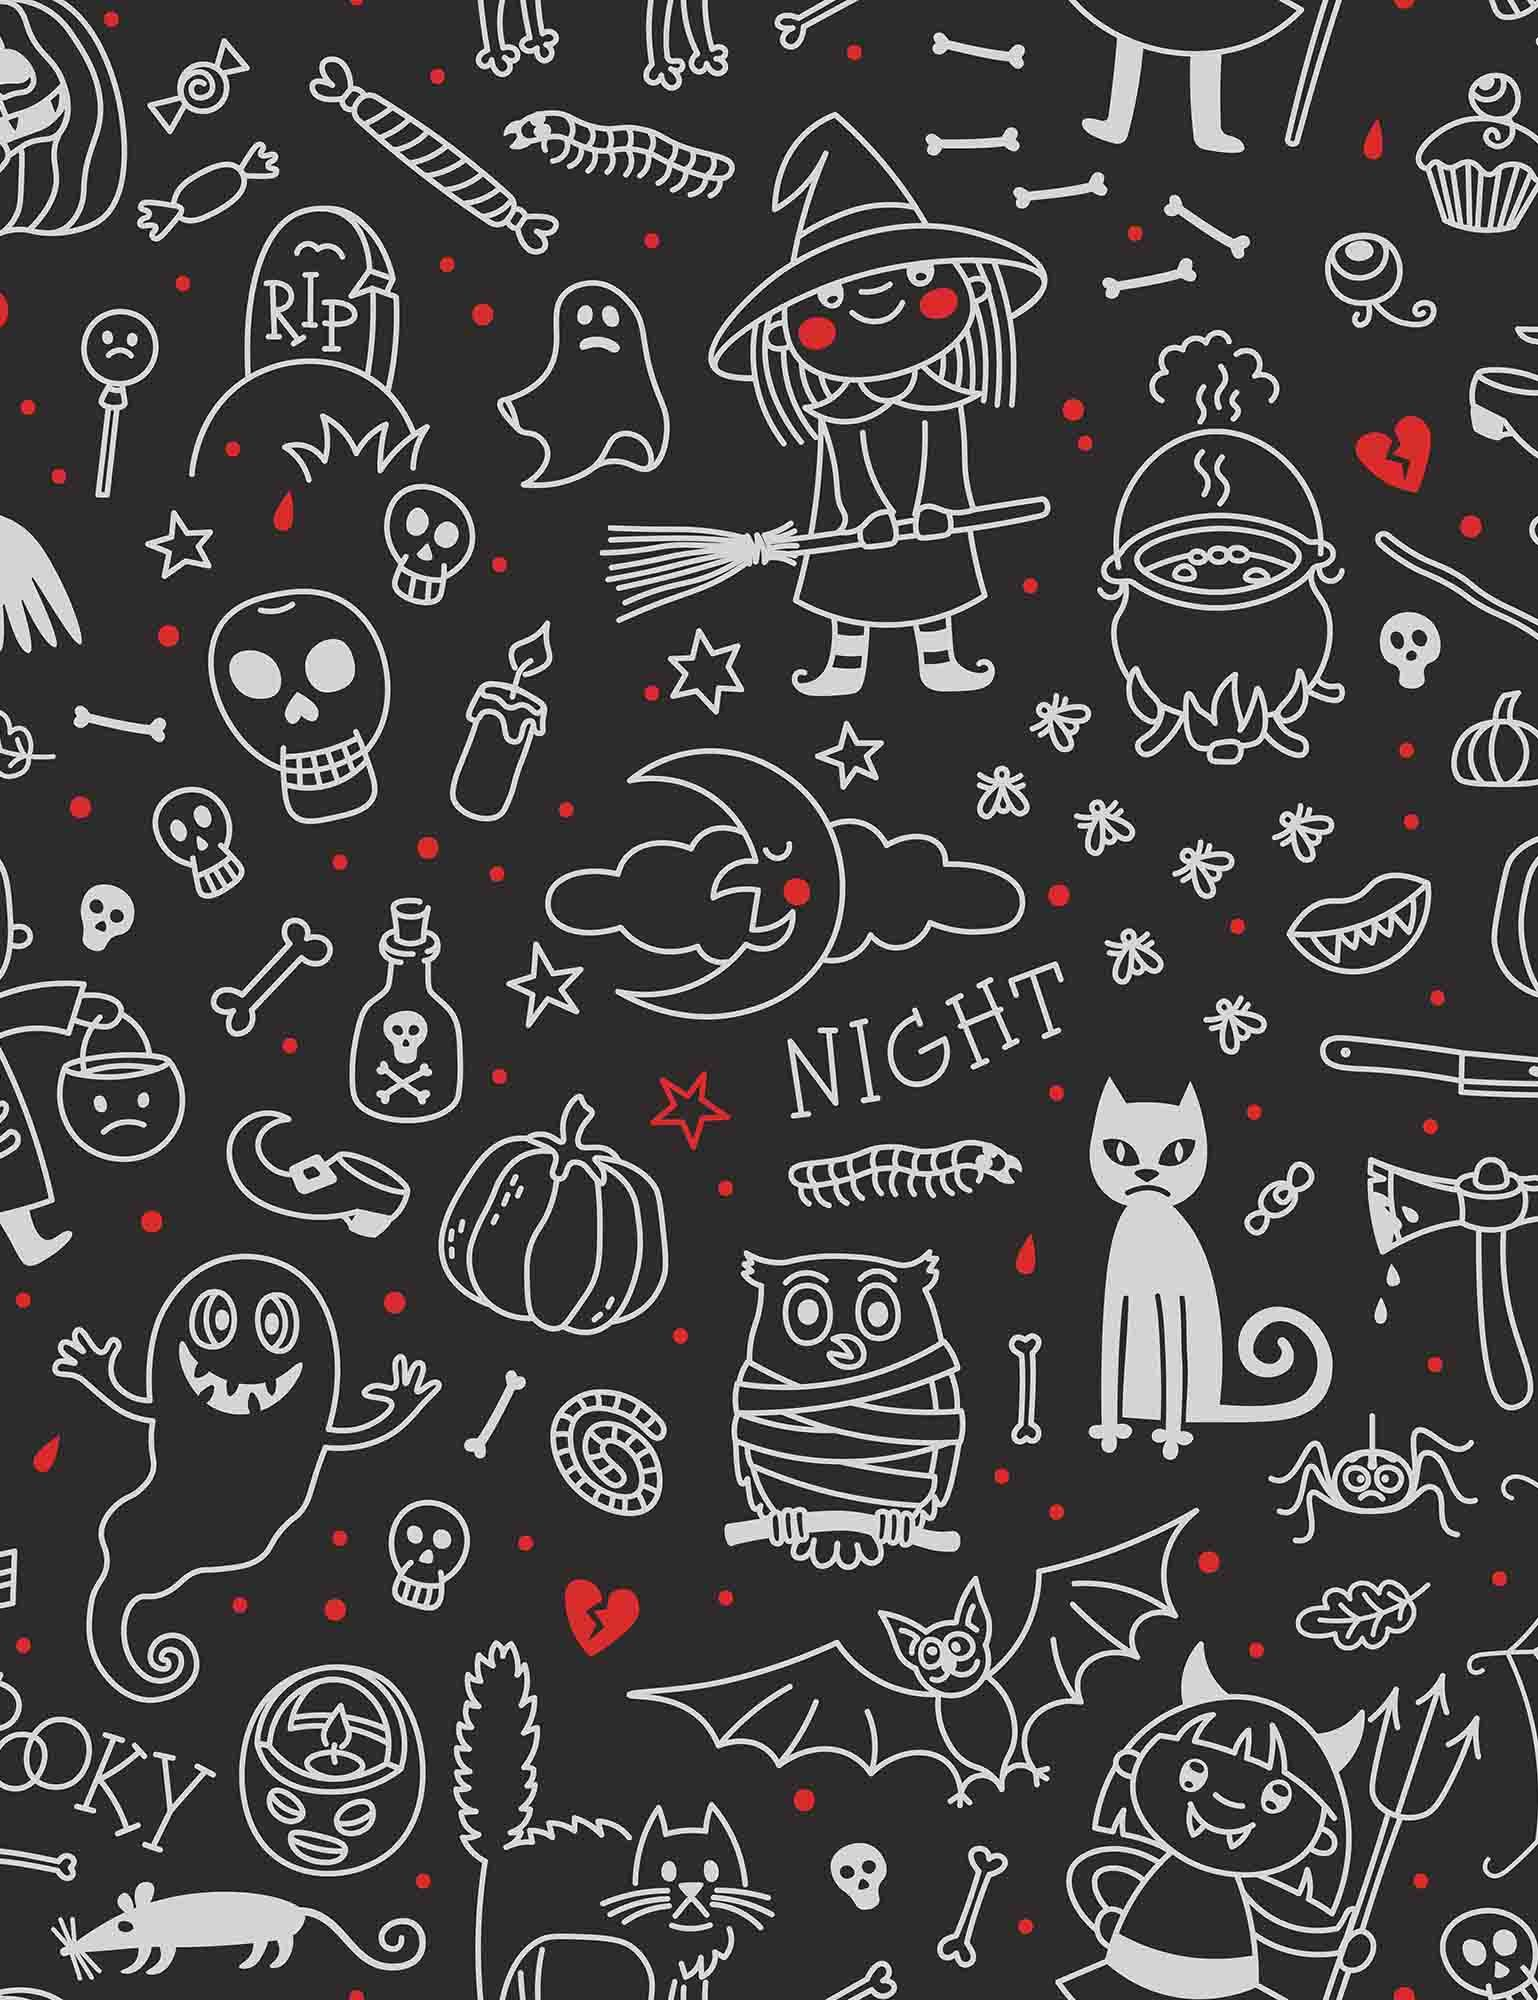 halloween printed on chalkboard background for holiday backdrop